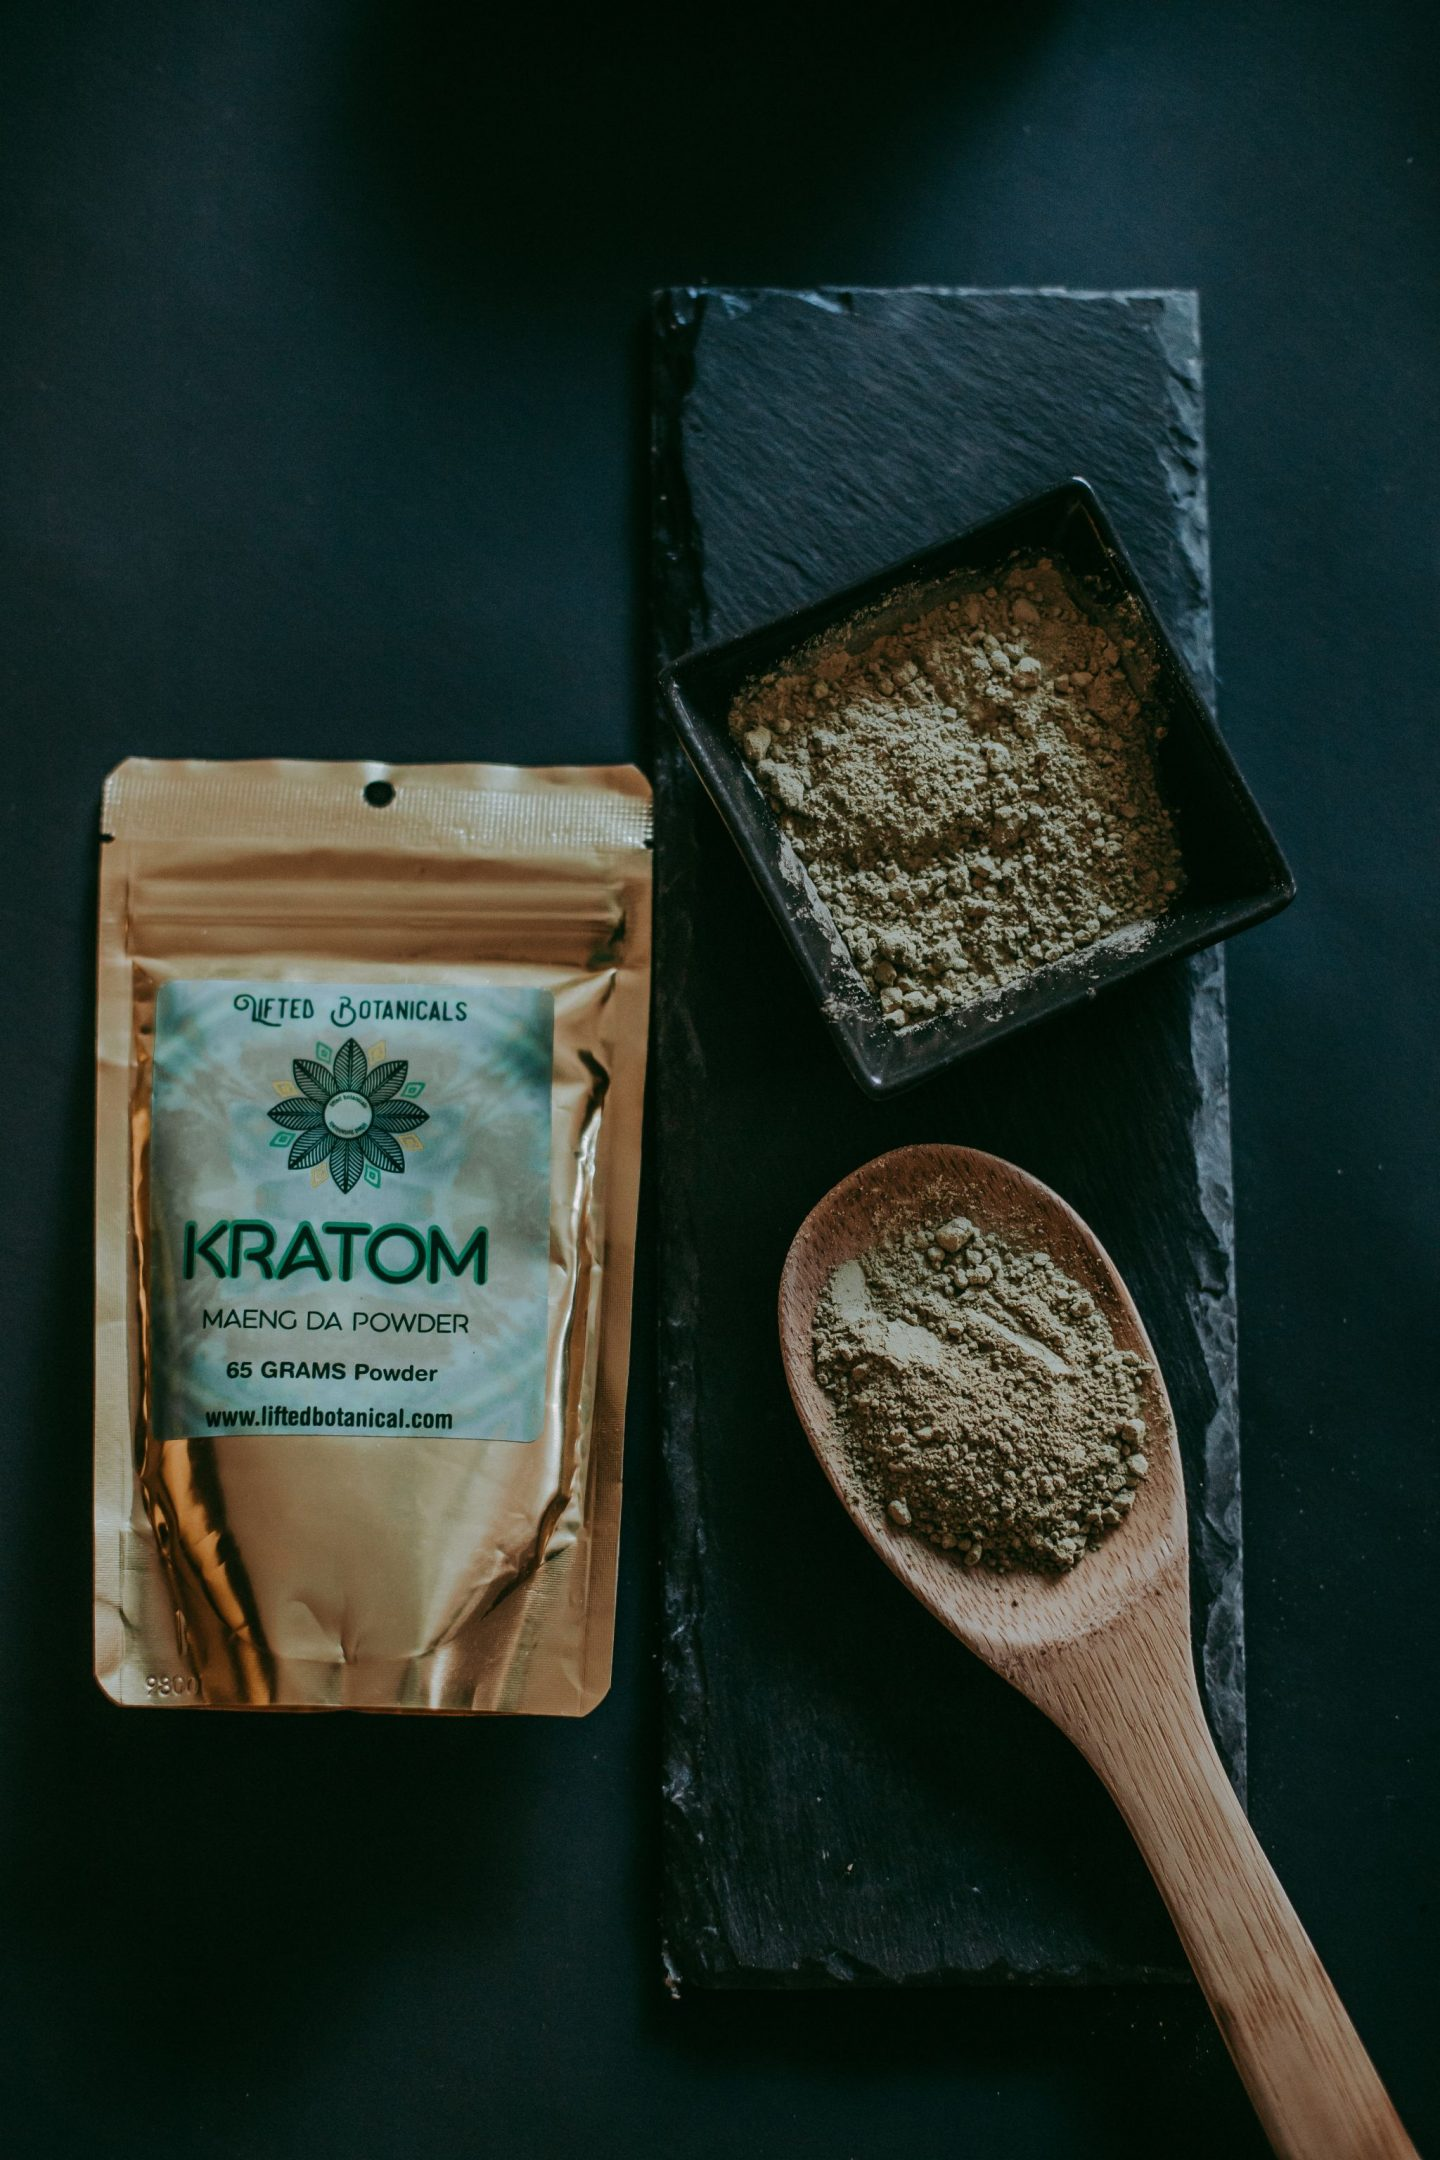 WHAT ARE THE LEGAL STATUS OF KRATOM